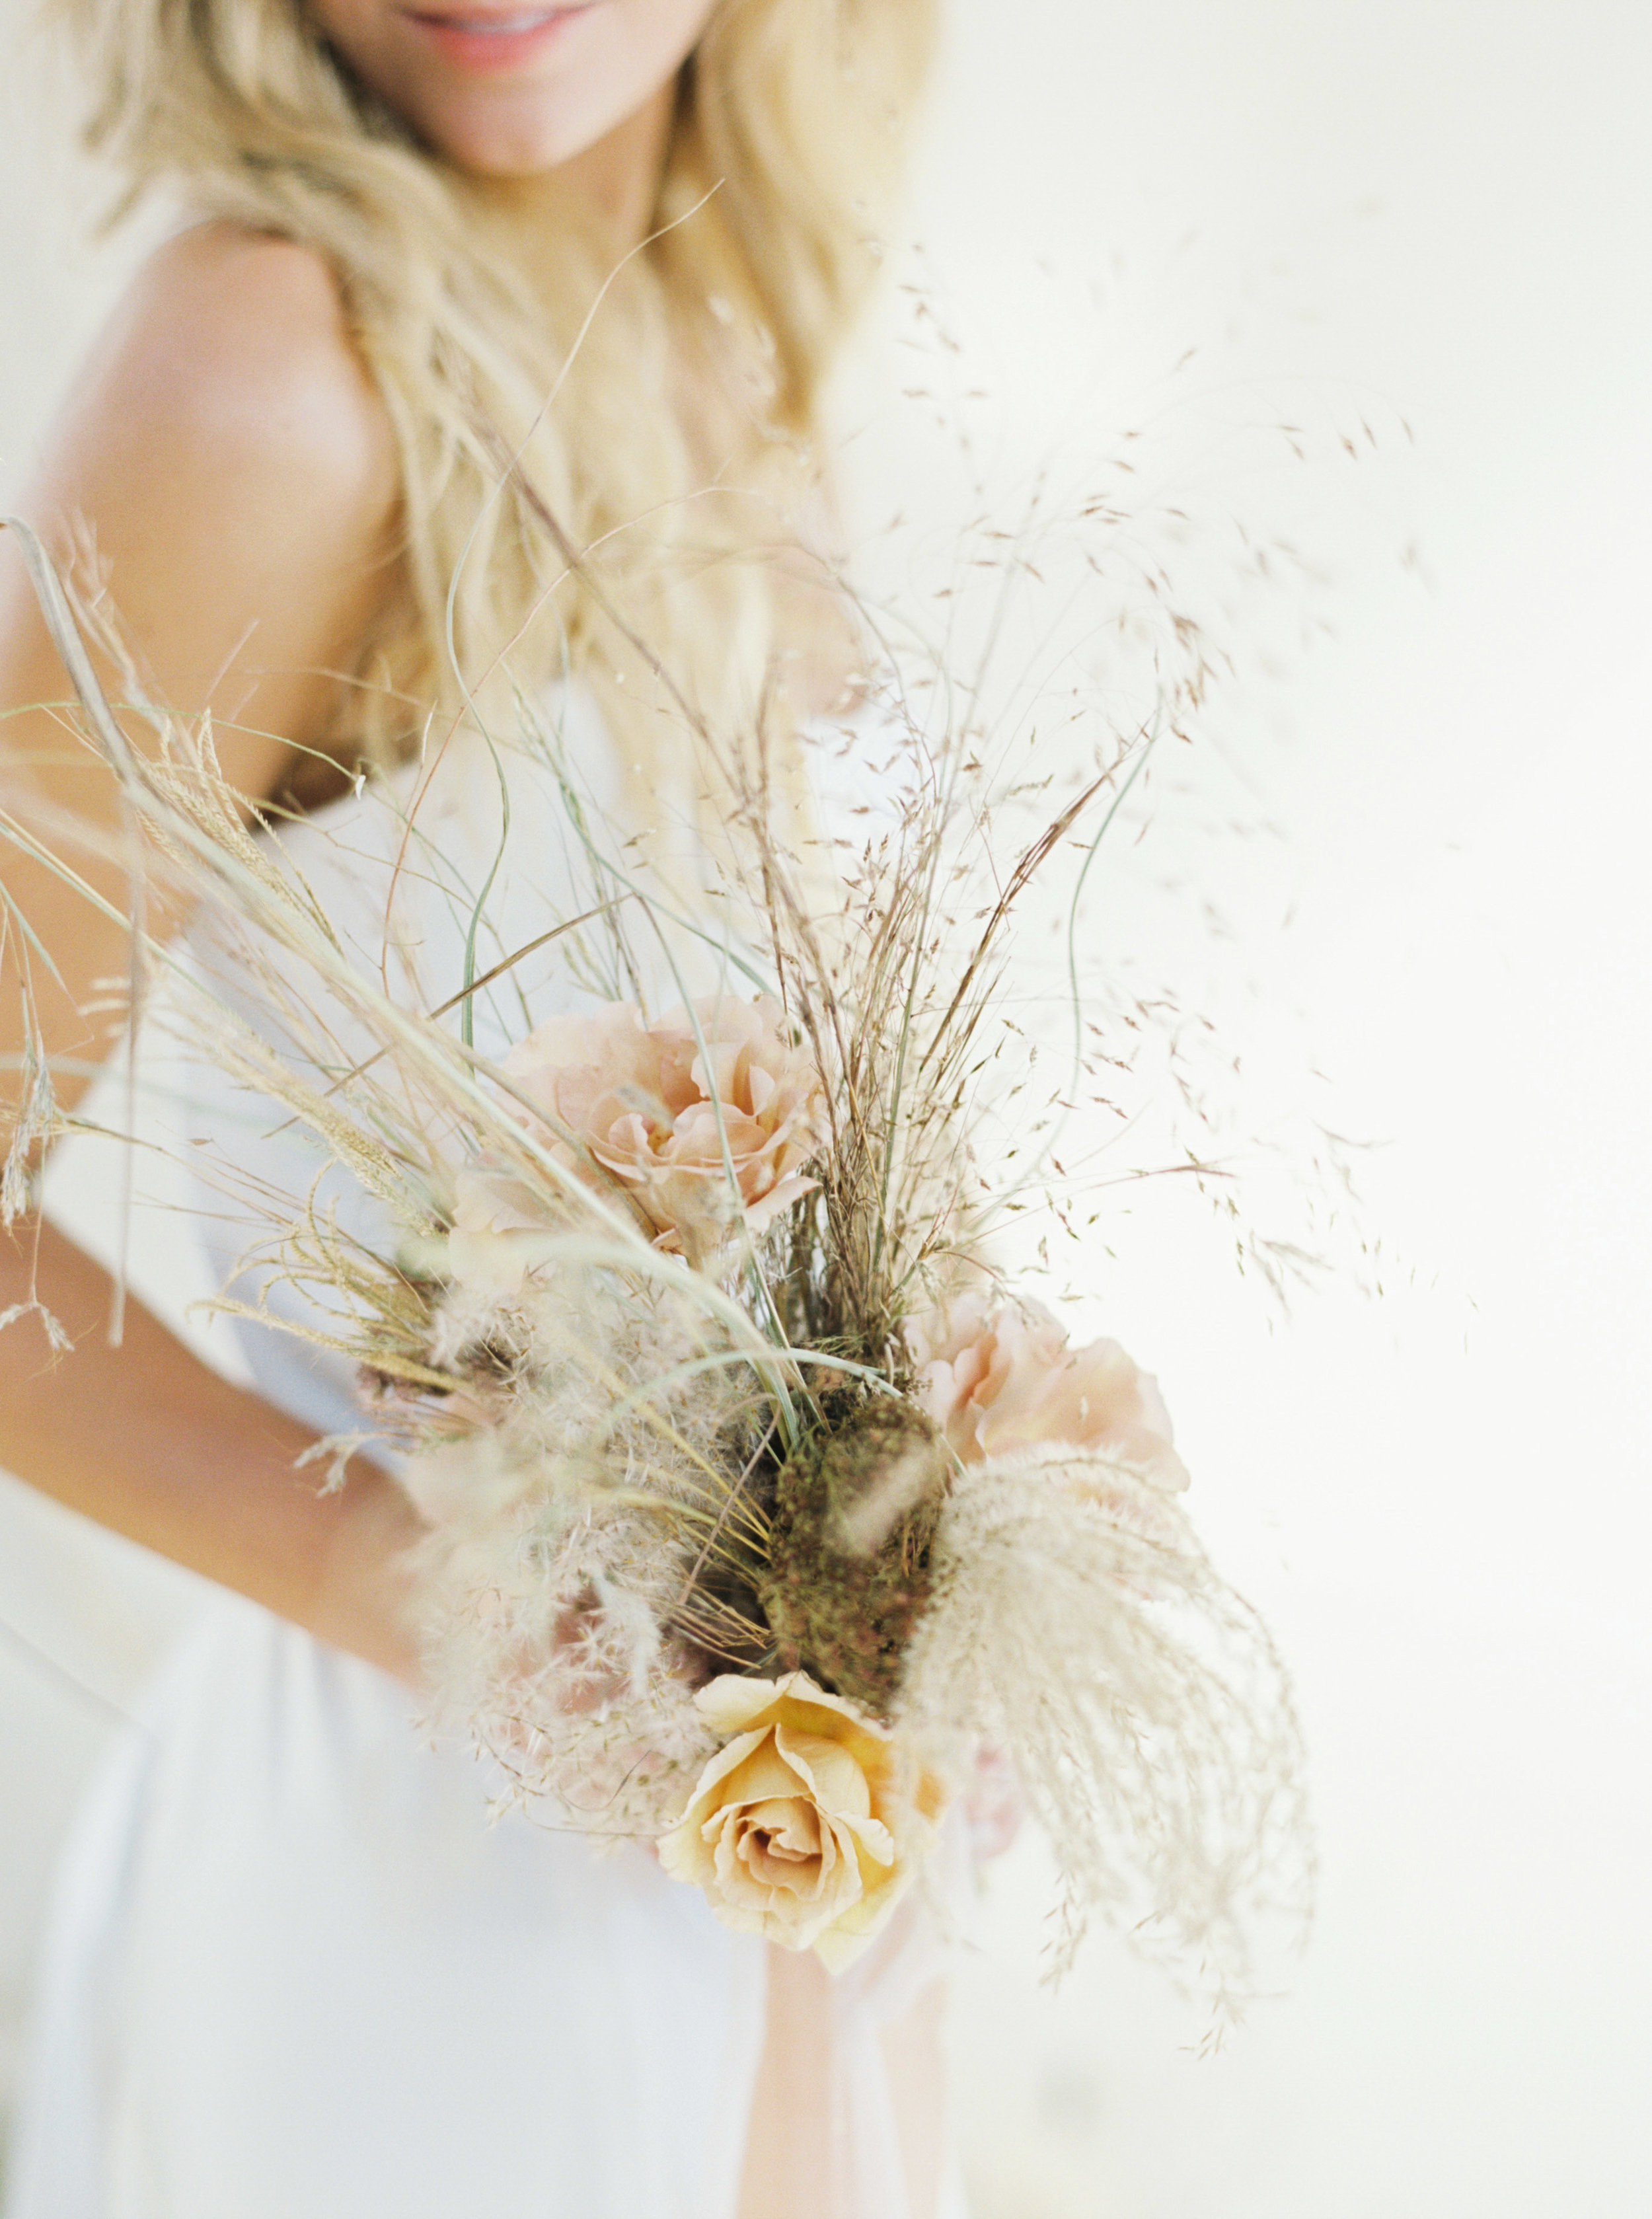 Copy of Autumn colour tones of artisan dried flower art installation with dreamy wedding ceremony backdrop design with trendy pampas grass